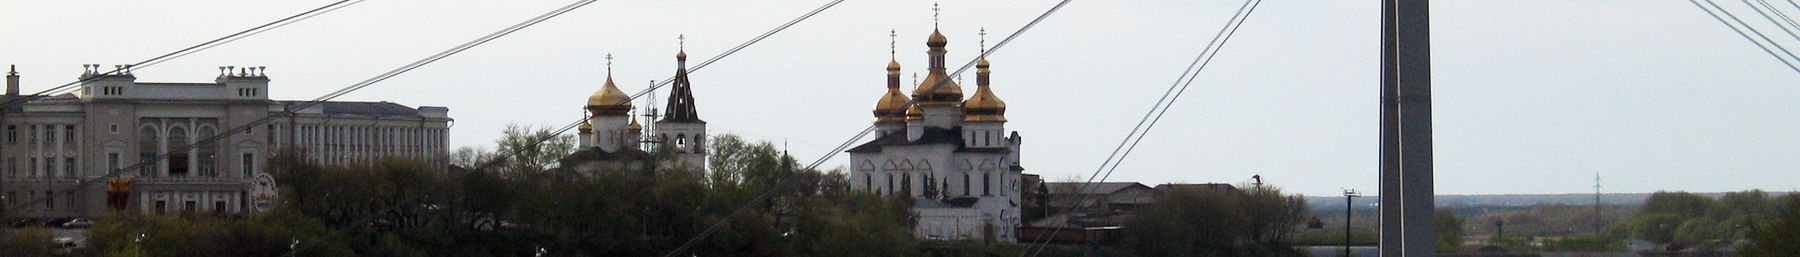 Tyumen (Russia) banner Buildings with onion domes behind bridge stays.jpg